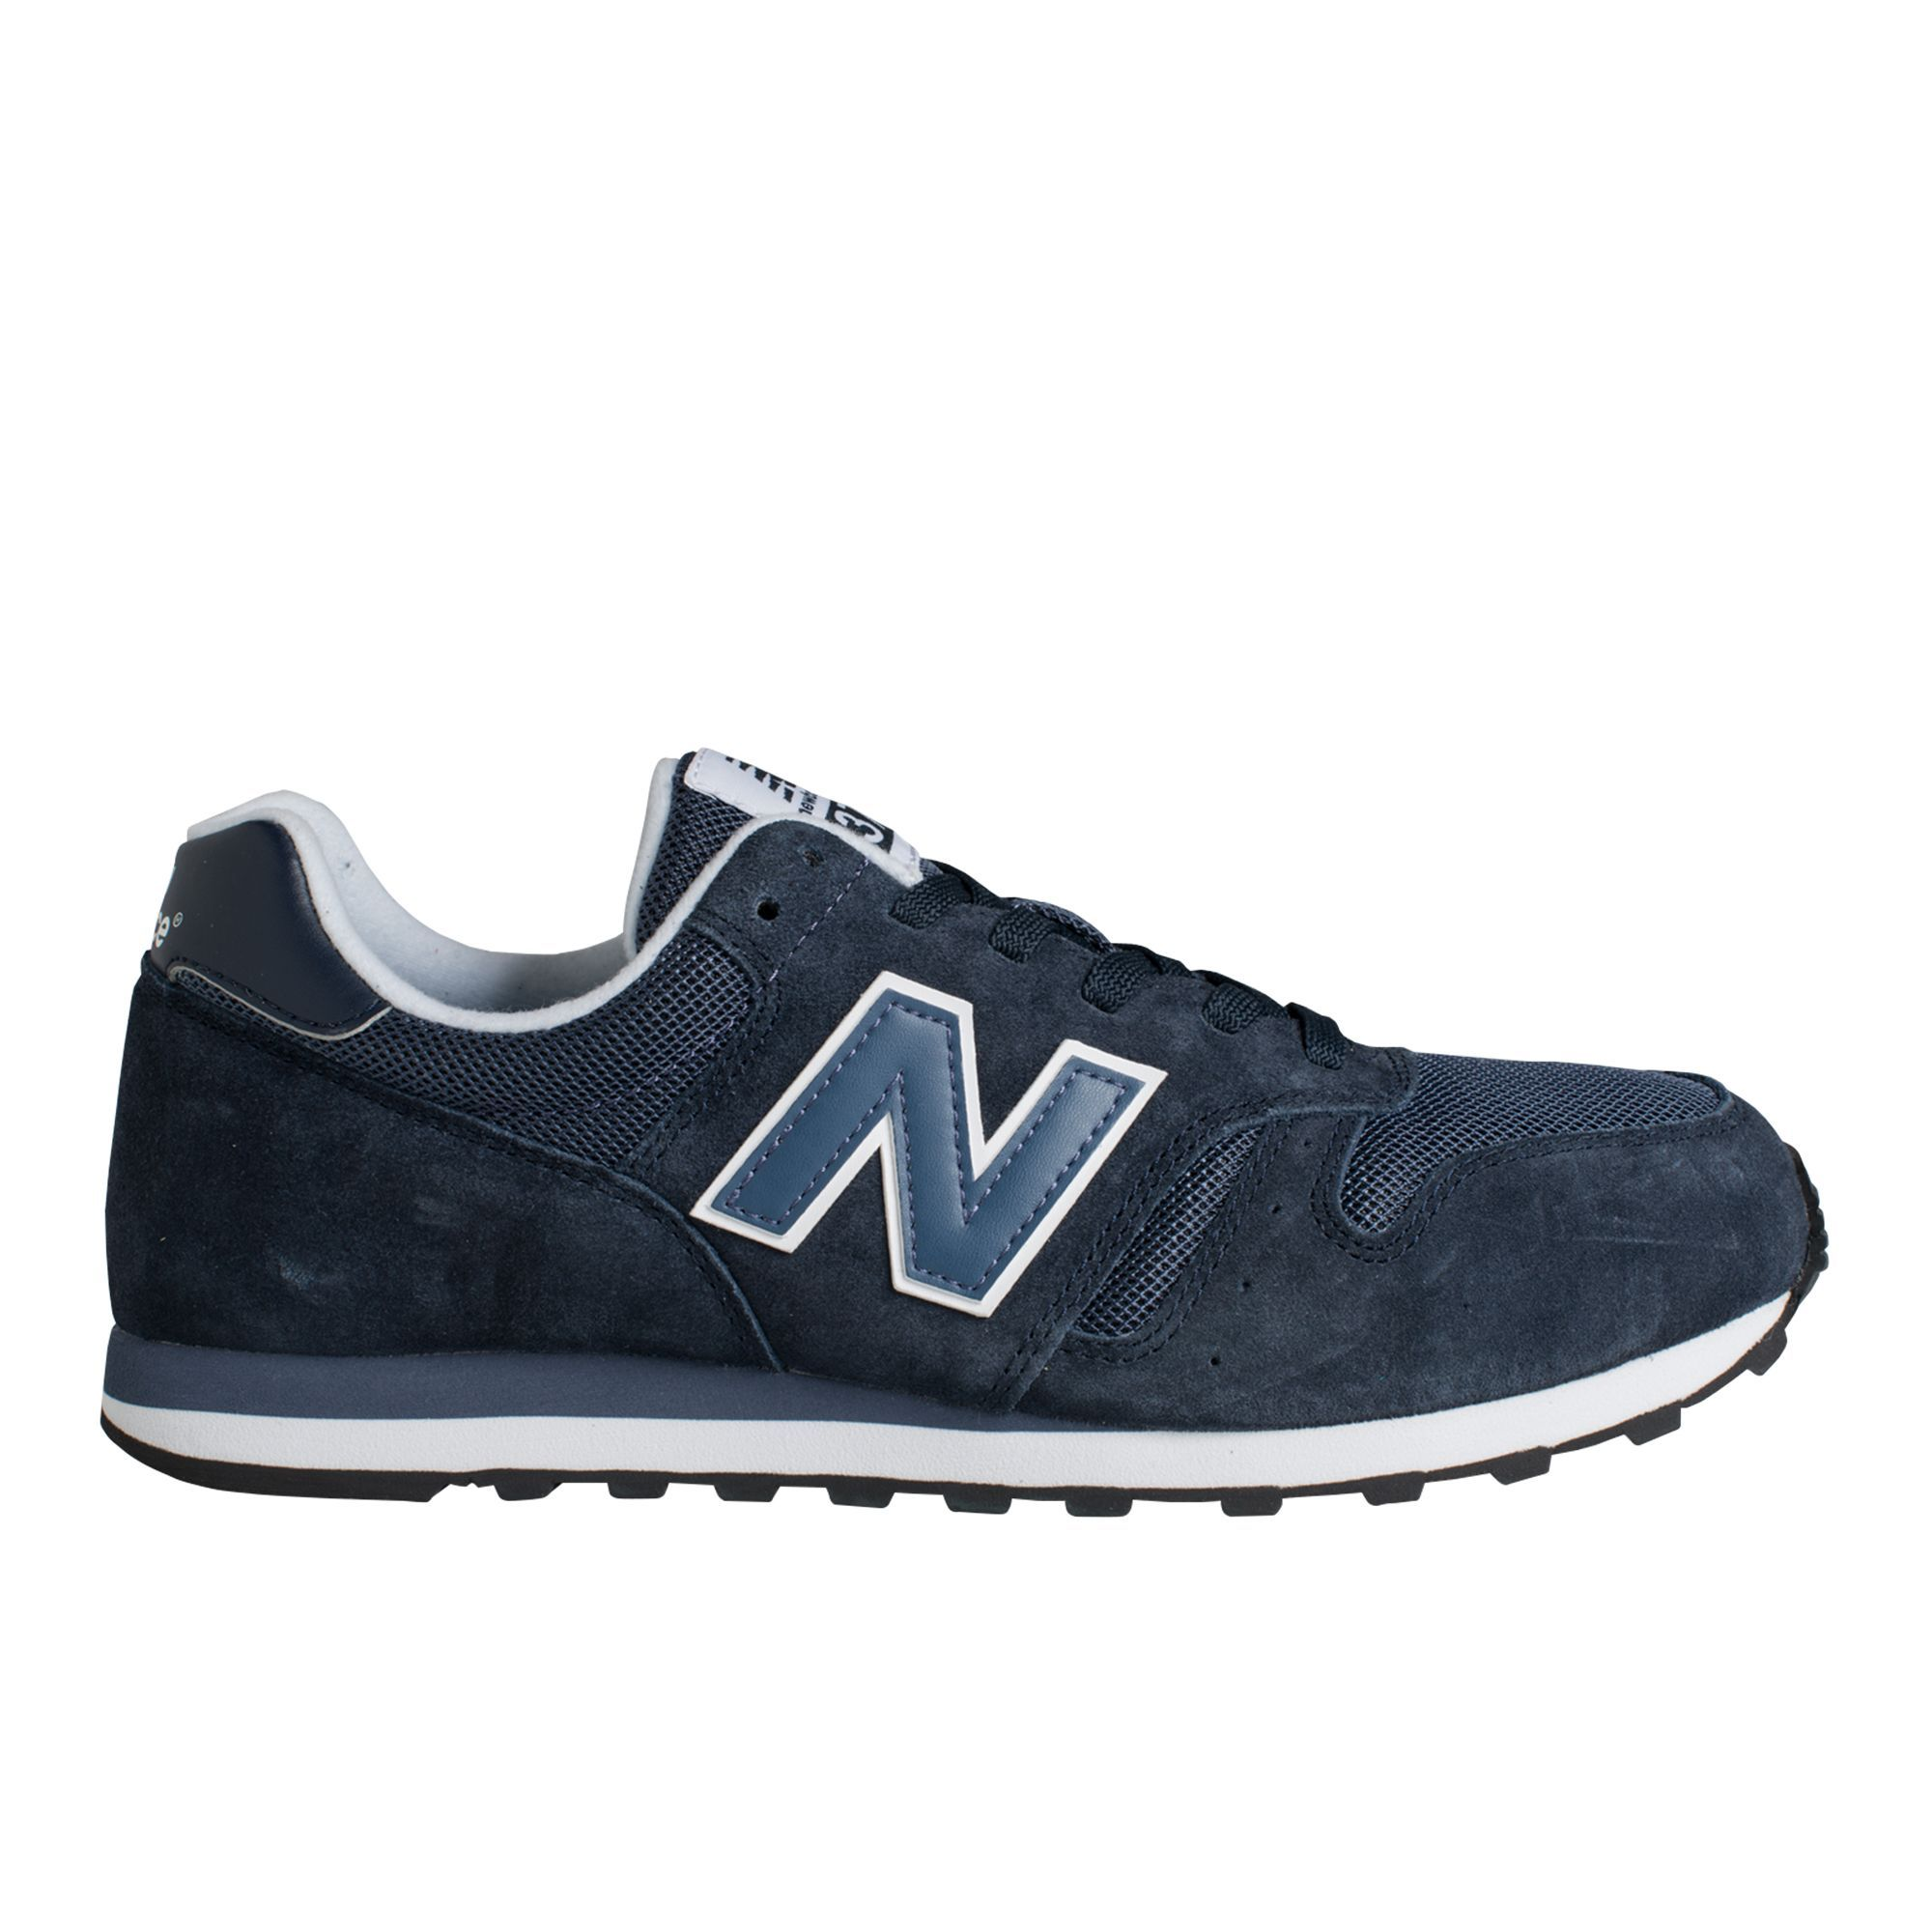 New Balance ML373 (blauw) | New Balance 373 | New Balance ...